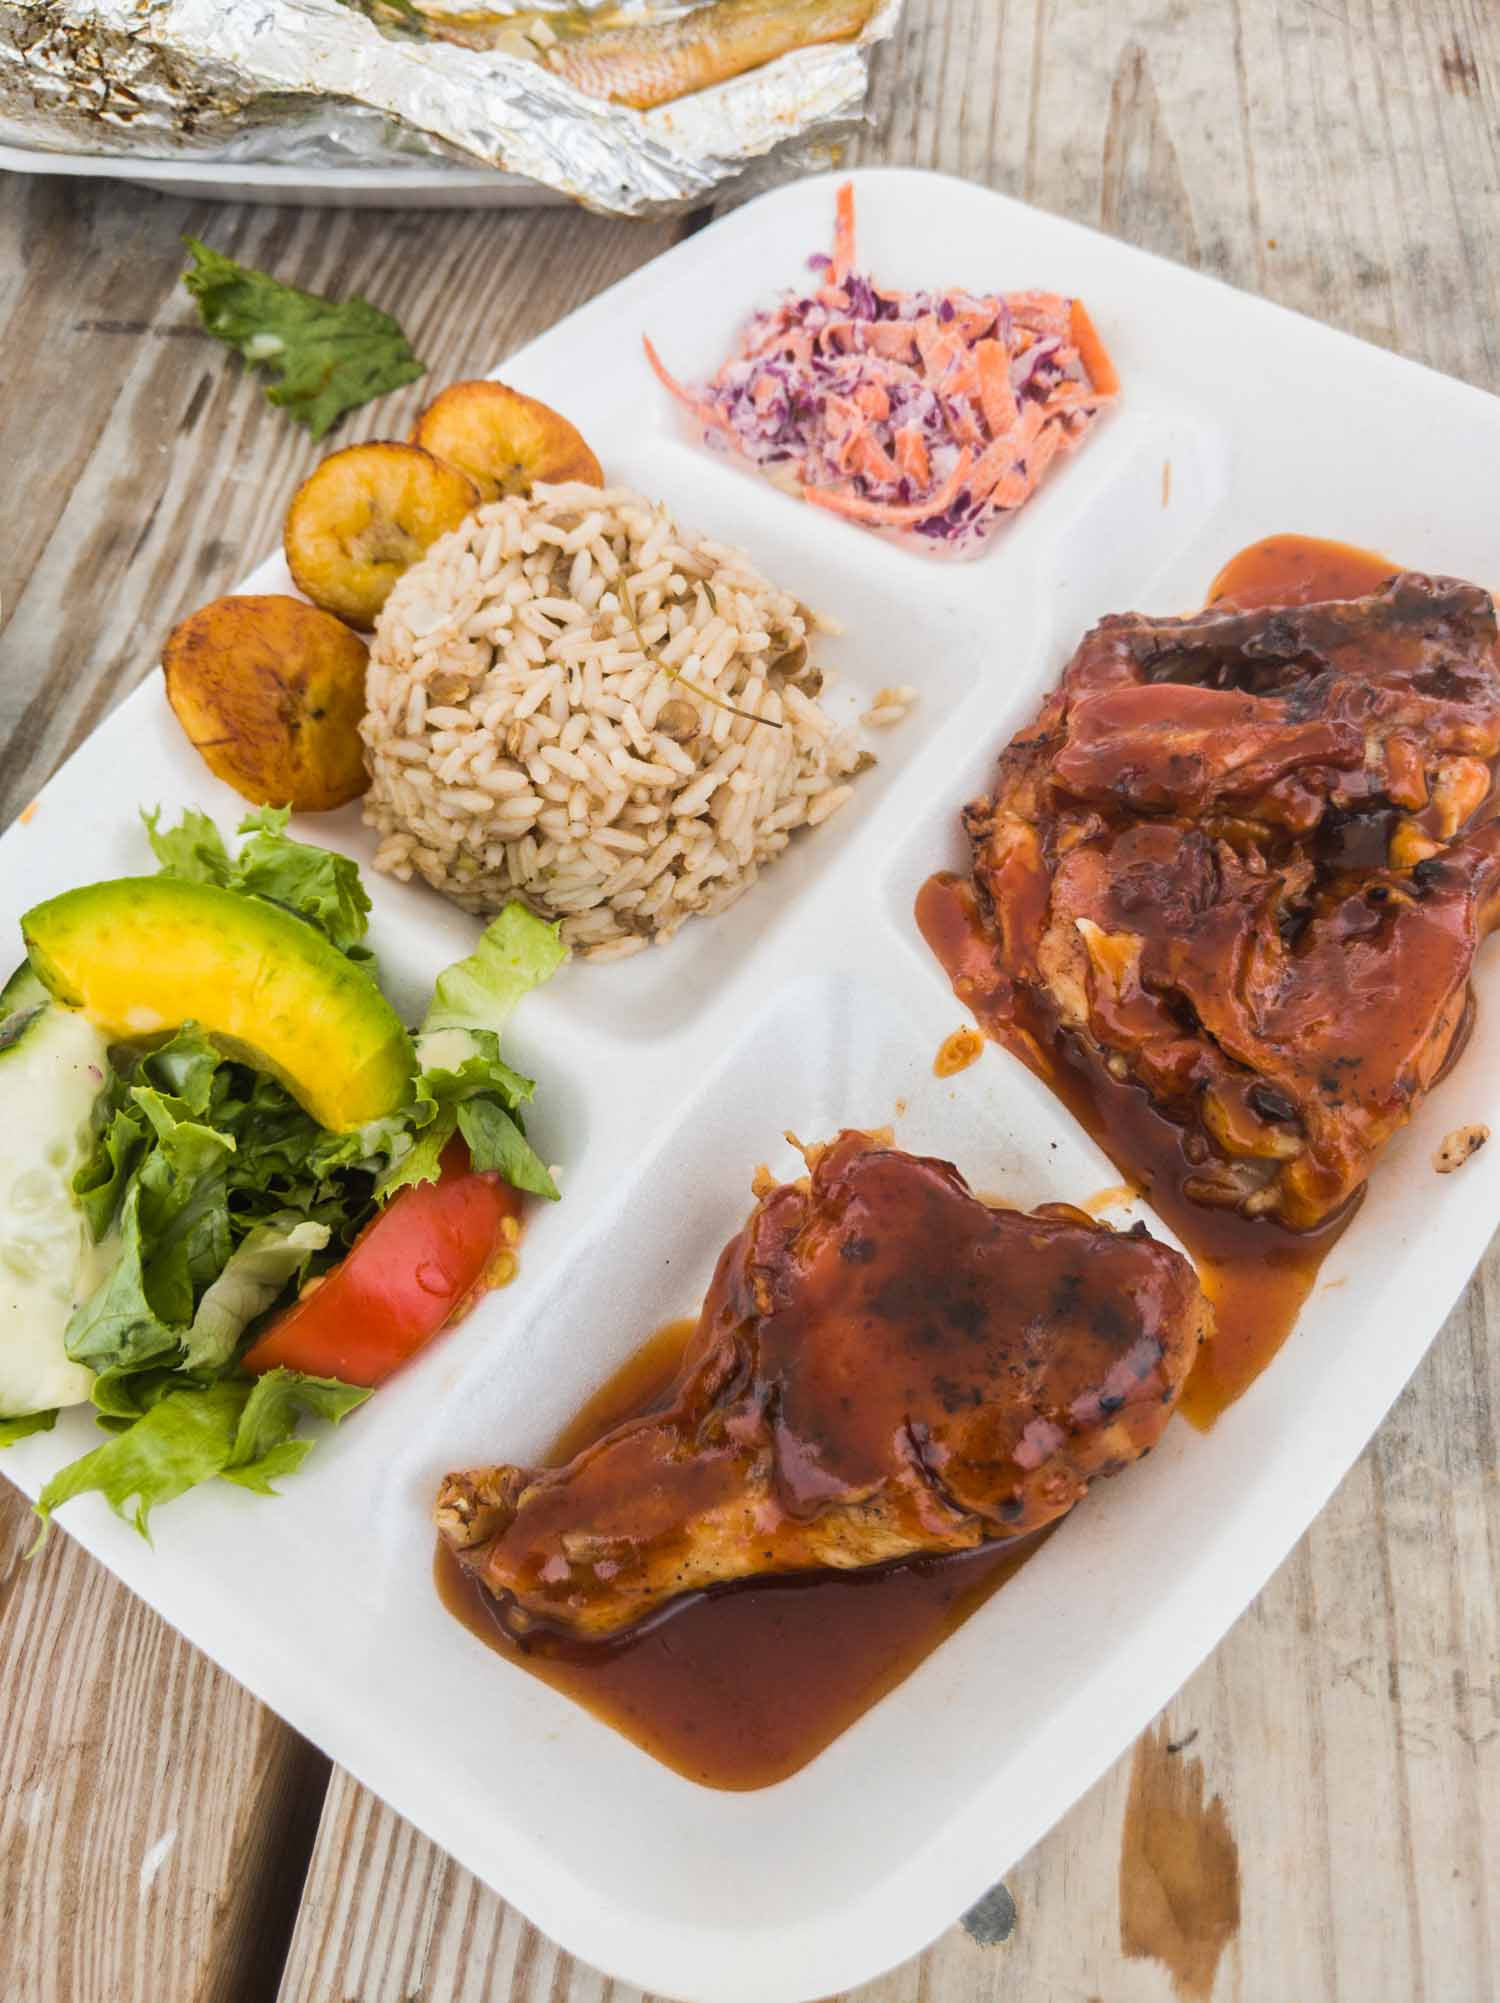 Anguilla Island: The Best Things to Do, See and Eat - Bacon